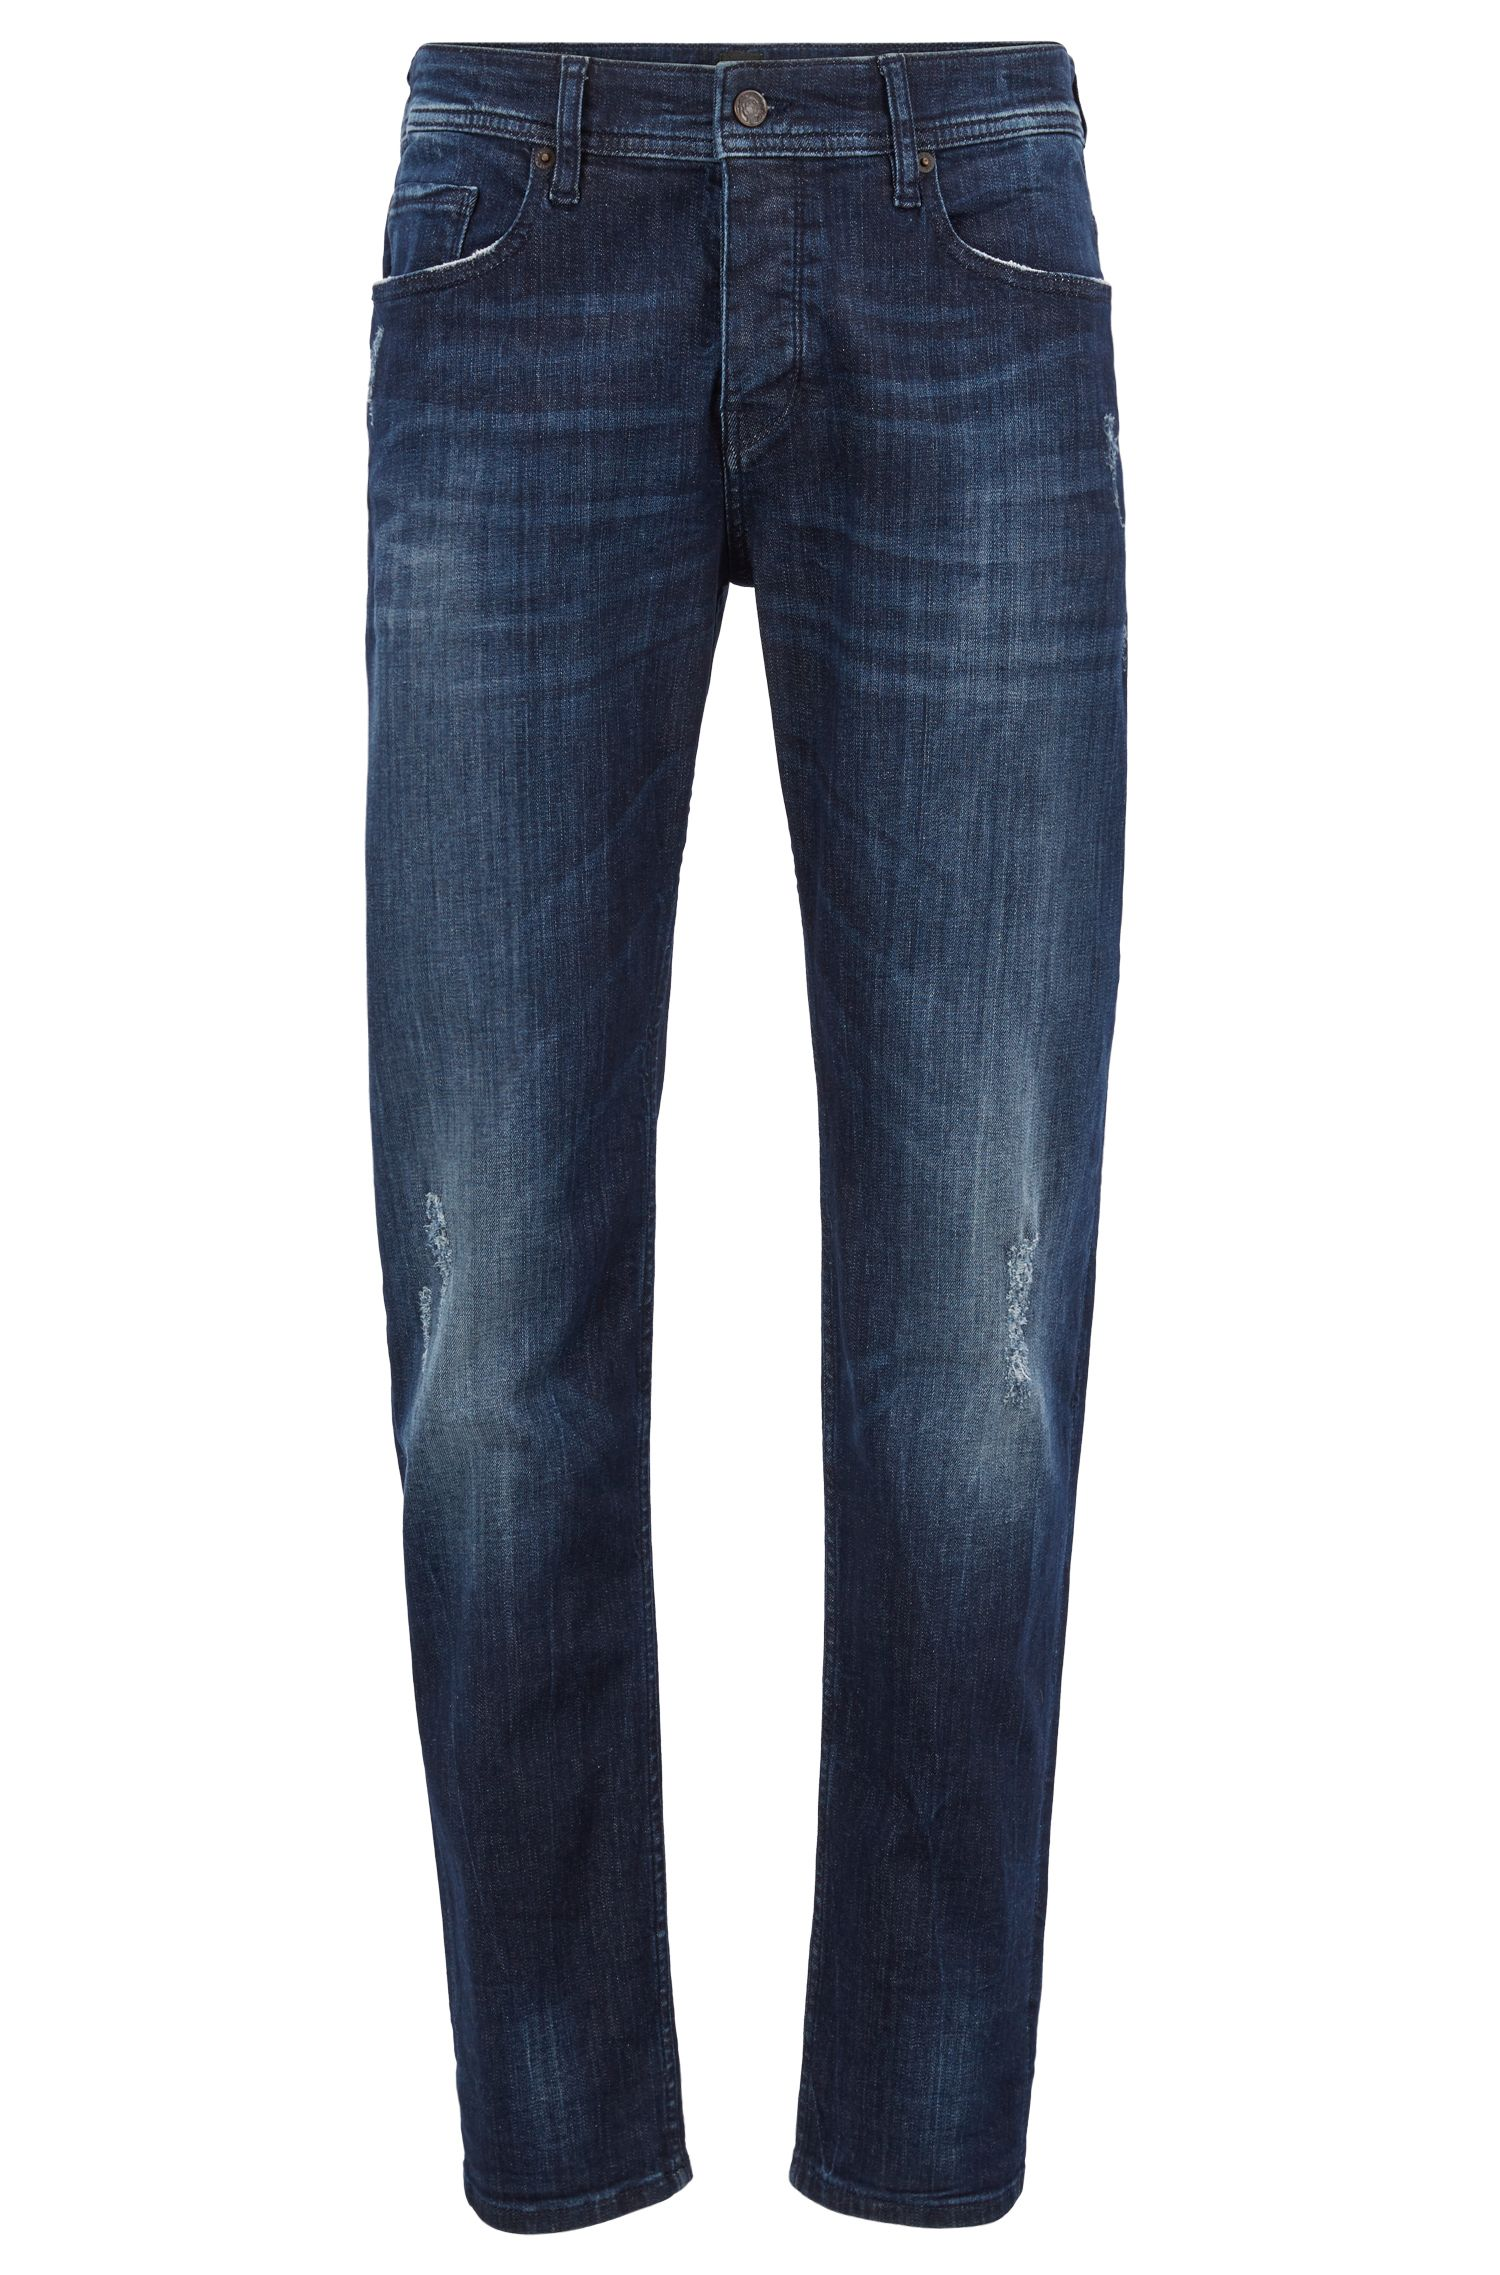 Jeans tapered fit in denim super elasticizzato